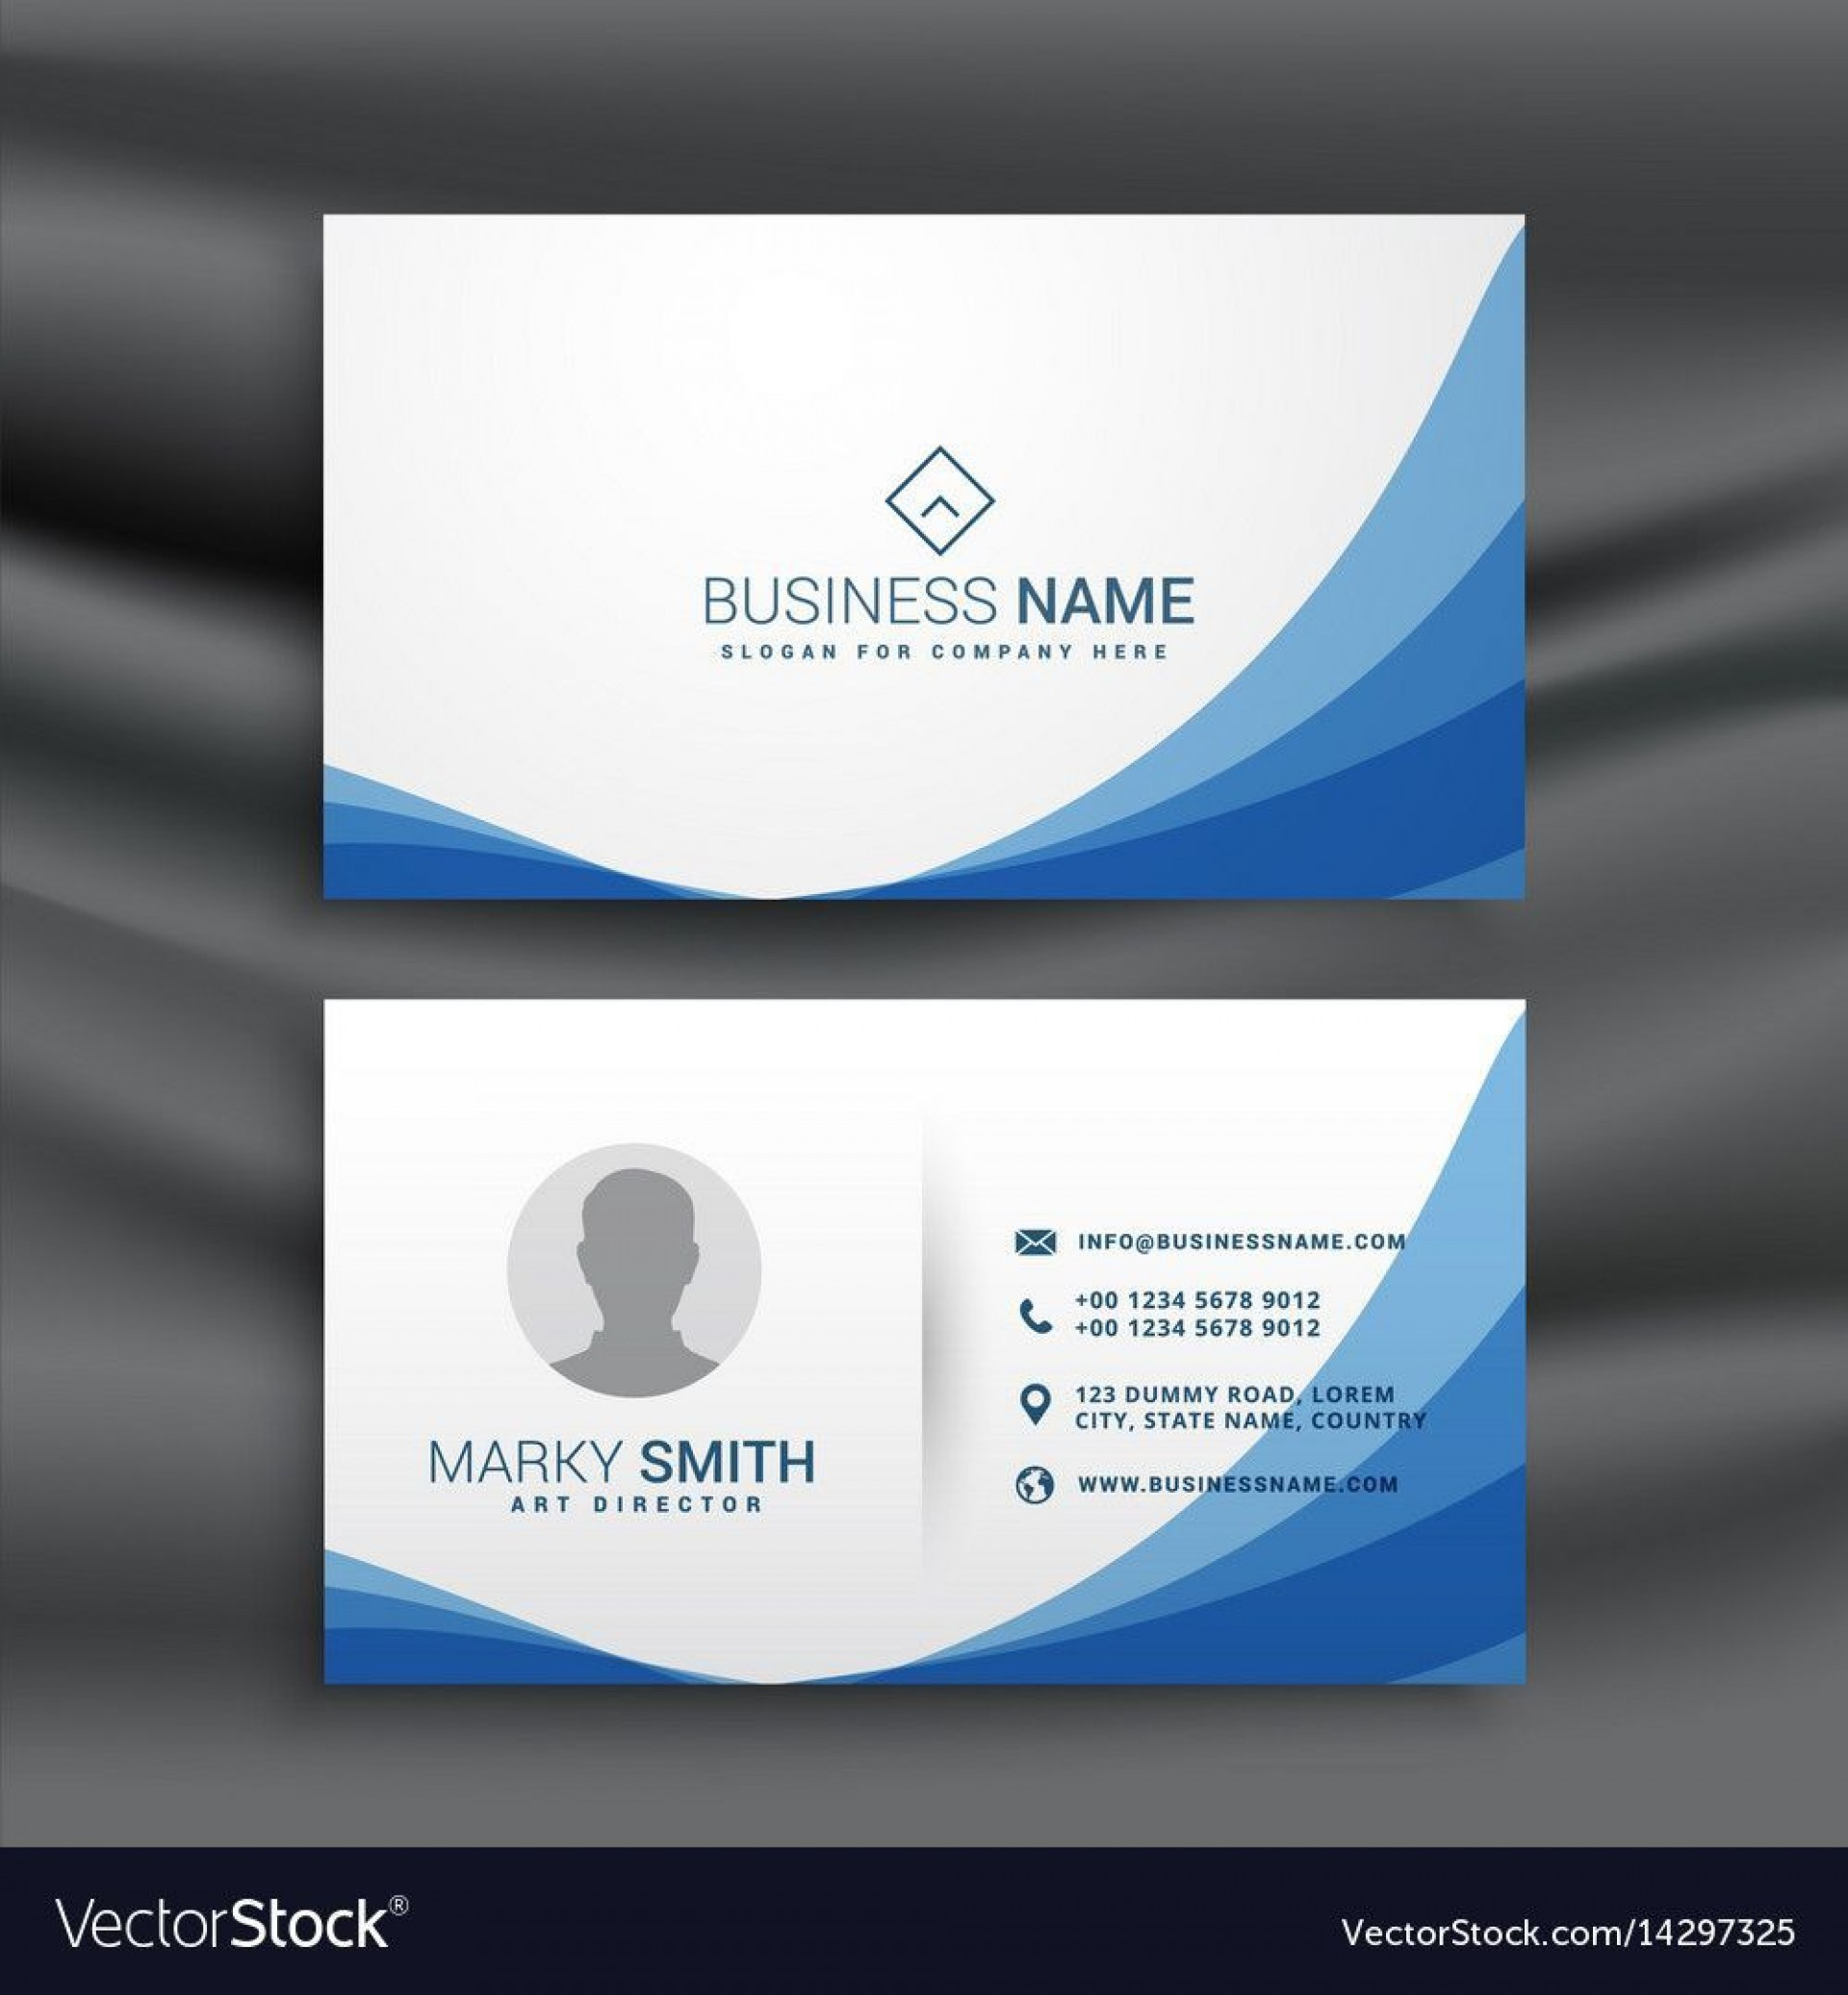 000 Exceptional Simple Visiting Card Template Concept  Templates Busines Psd Design File Free Download1920